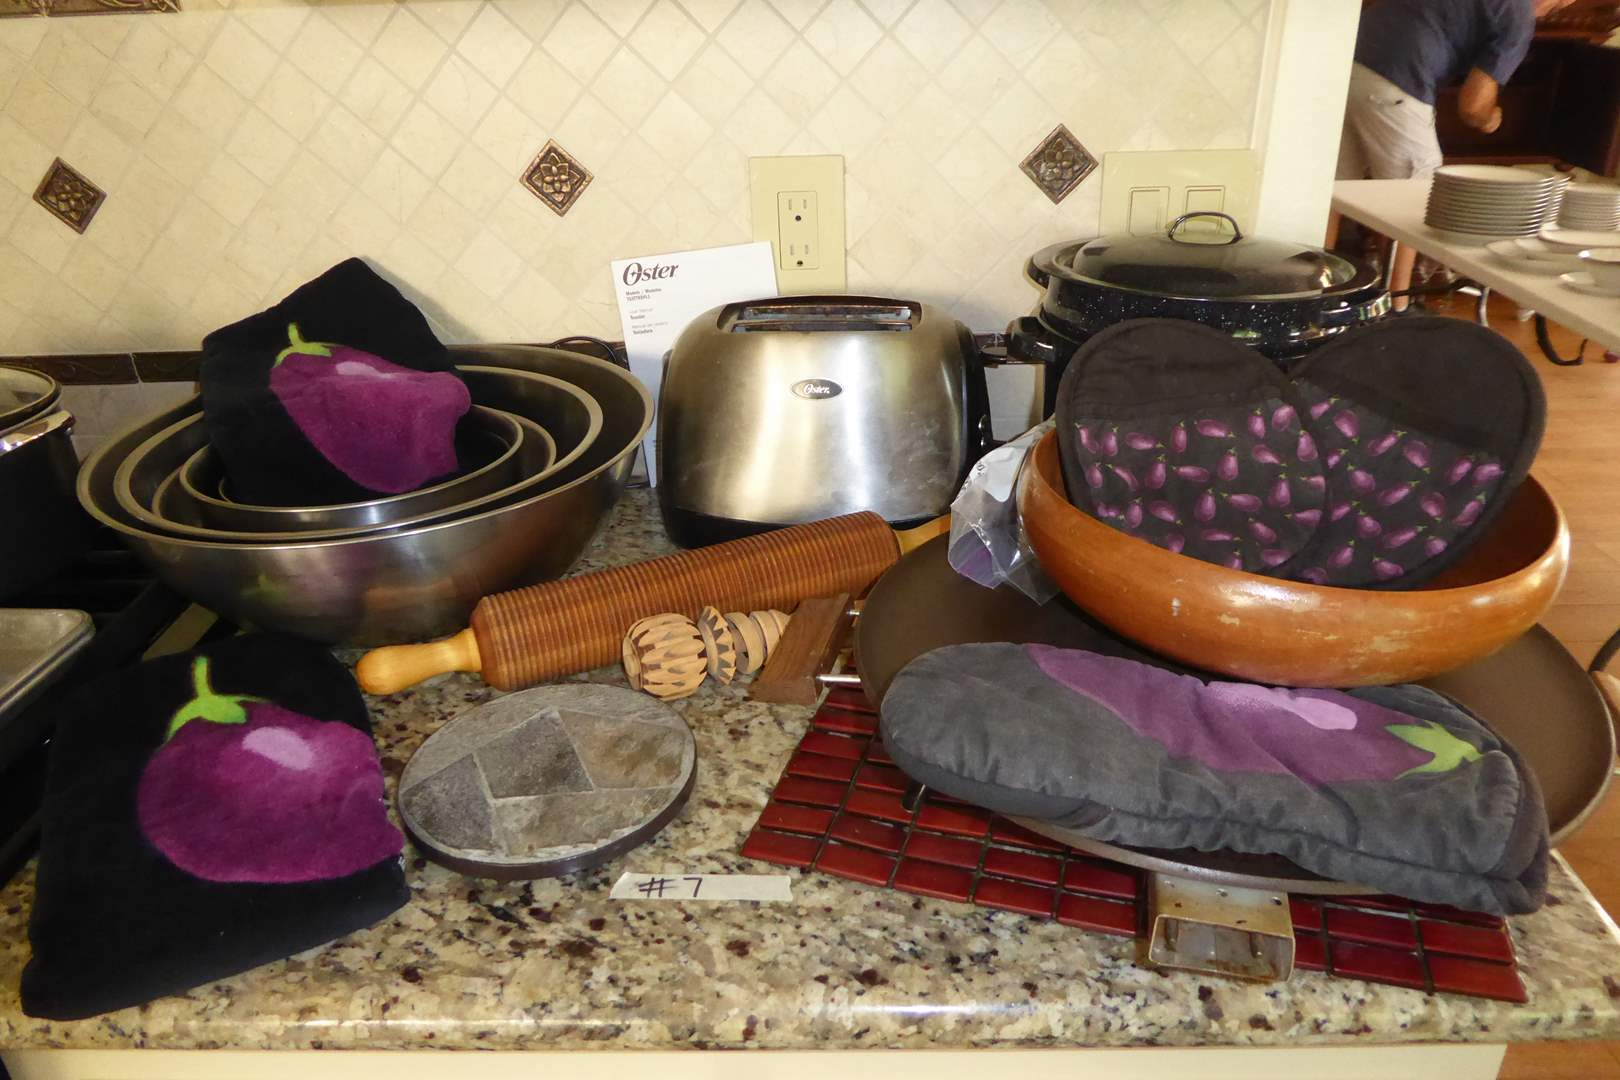 Lot # 7 - Wooden Rolling Pin, Speckled Roasting Pots, Electric Griddle & Eggplant Towels  (main image)